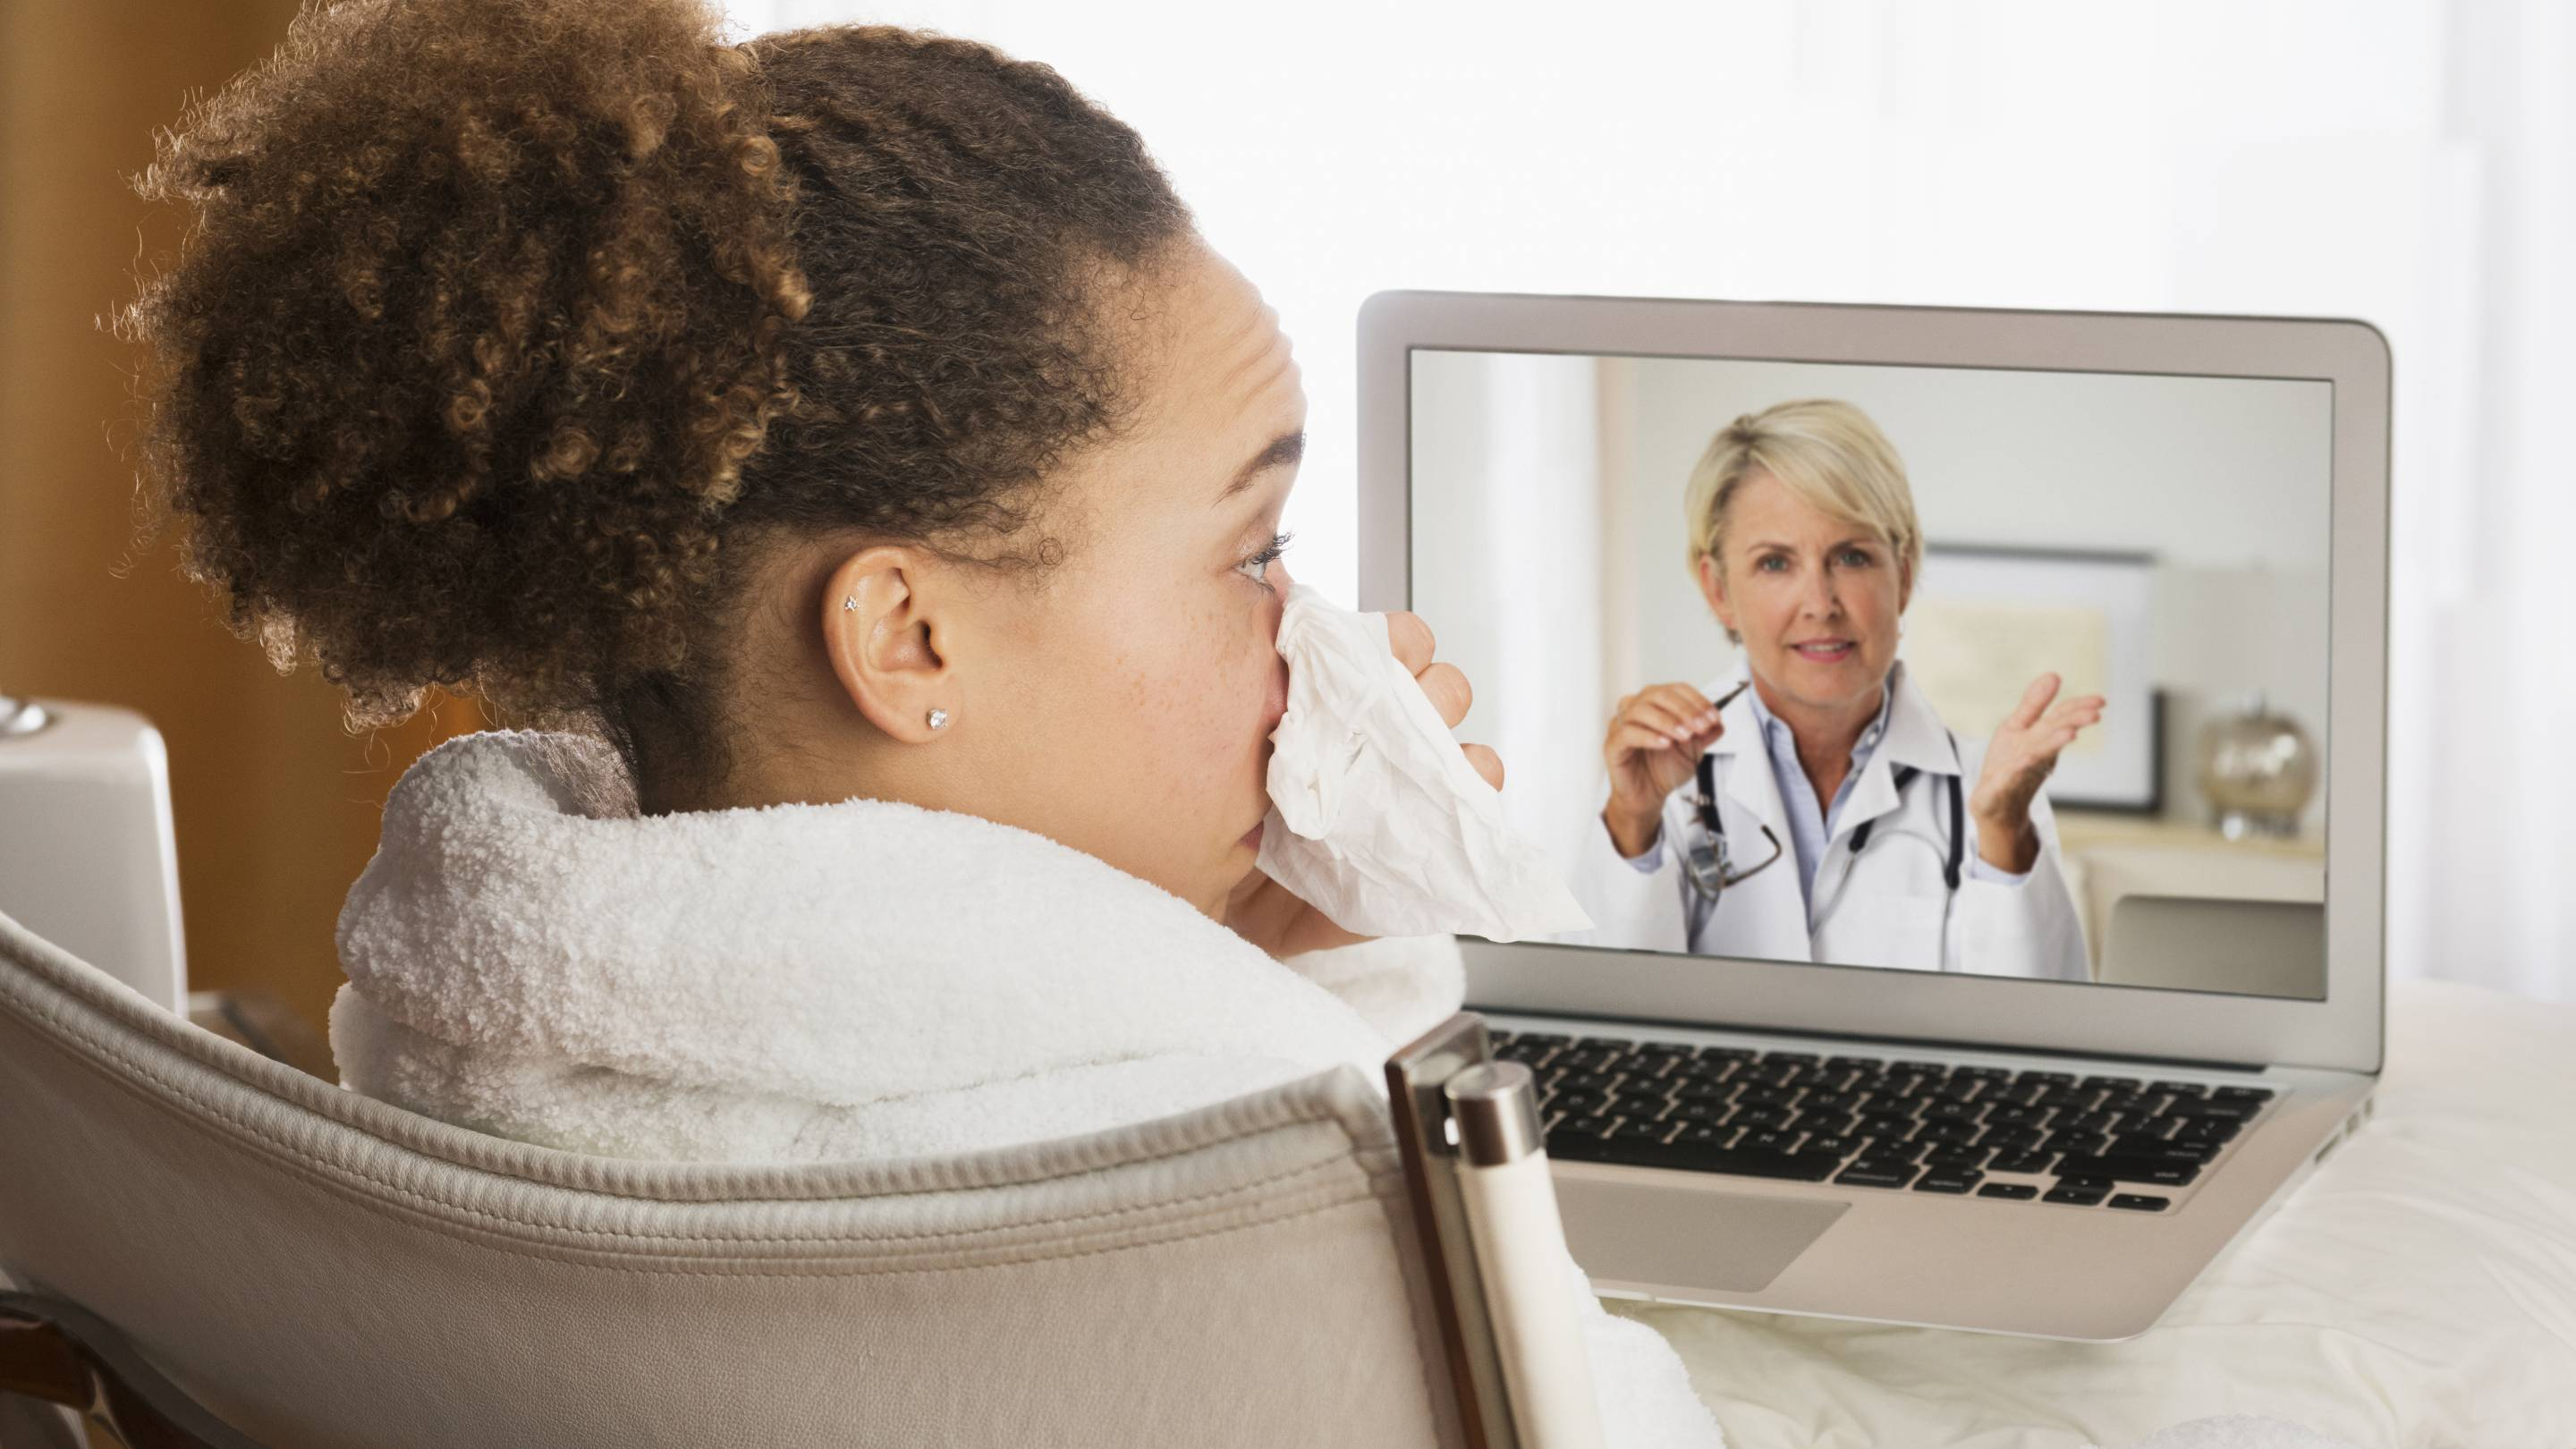 A sick woman video chats with her doctor on her laptop.